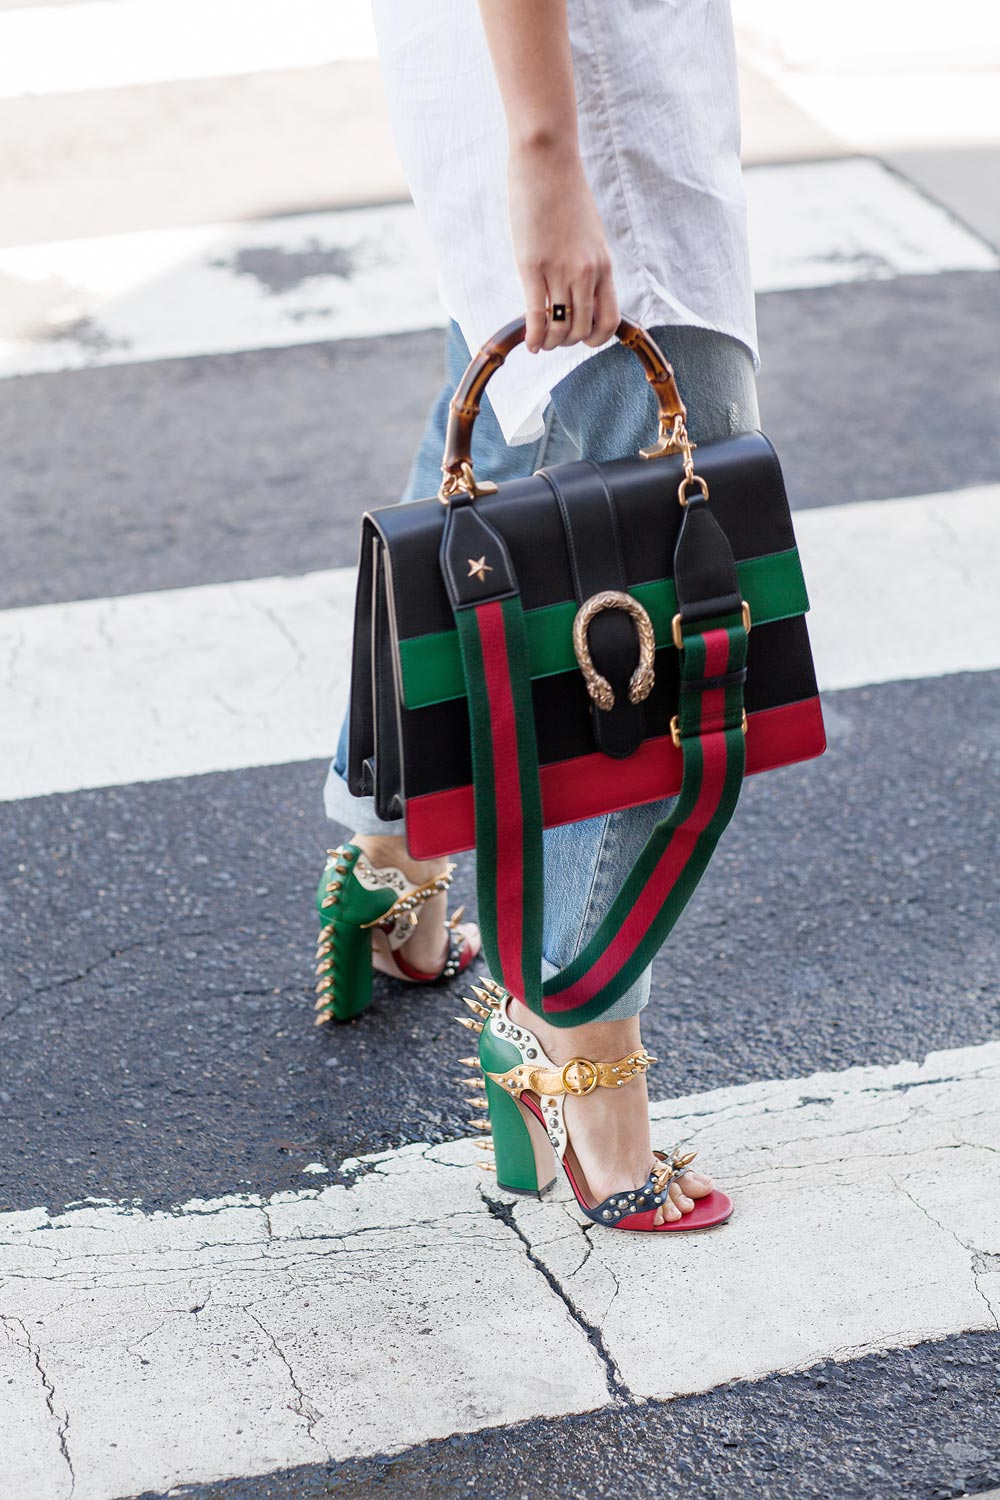 Steal Her Style: The Gucci Dream